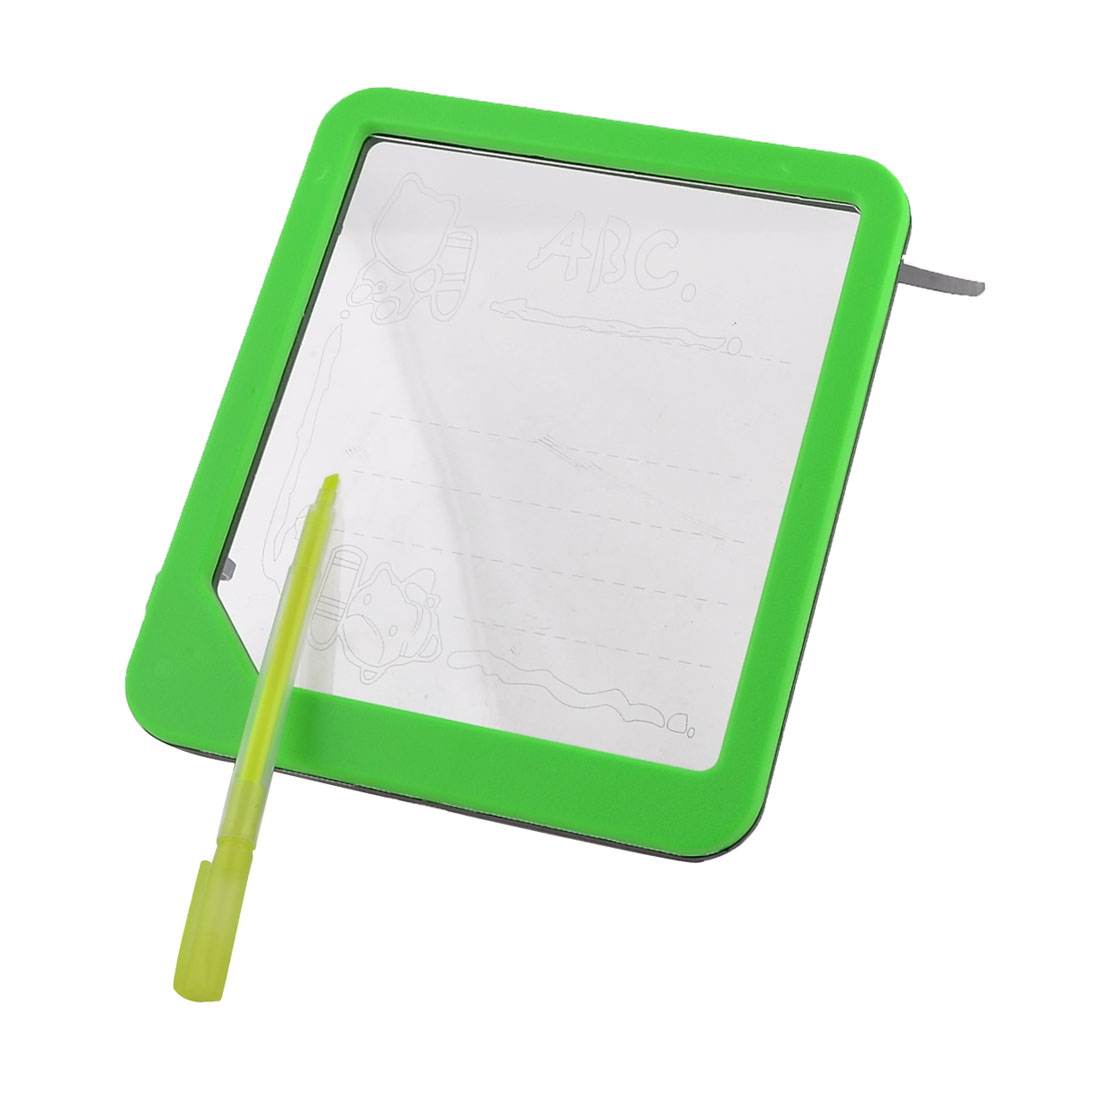 School Plastic Frame Glowing Blue LED Message Writing Board w Green Yellow Pen